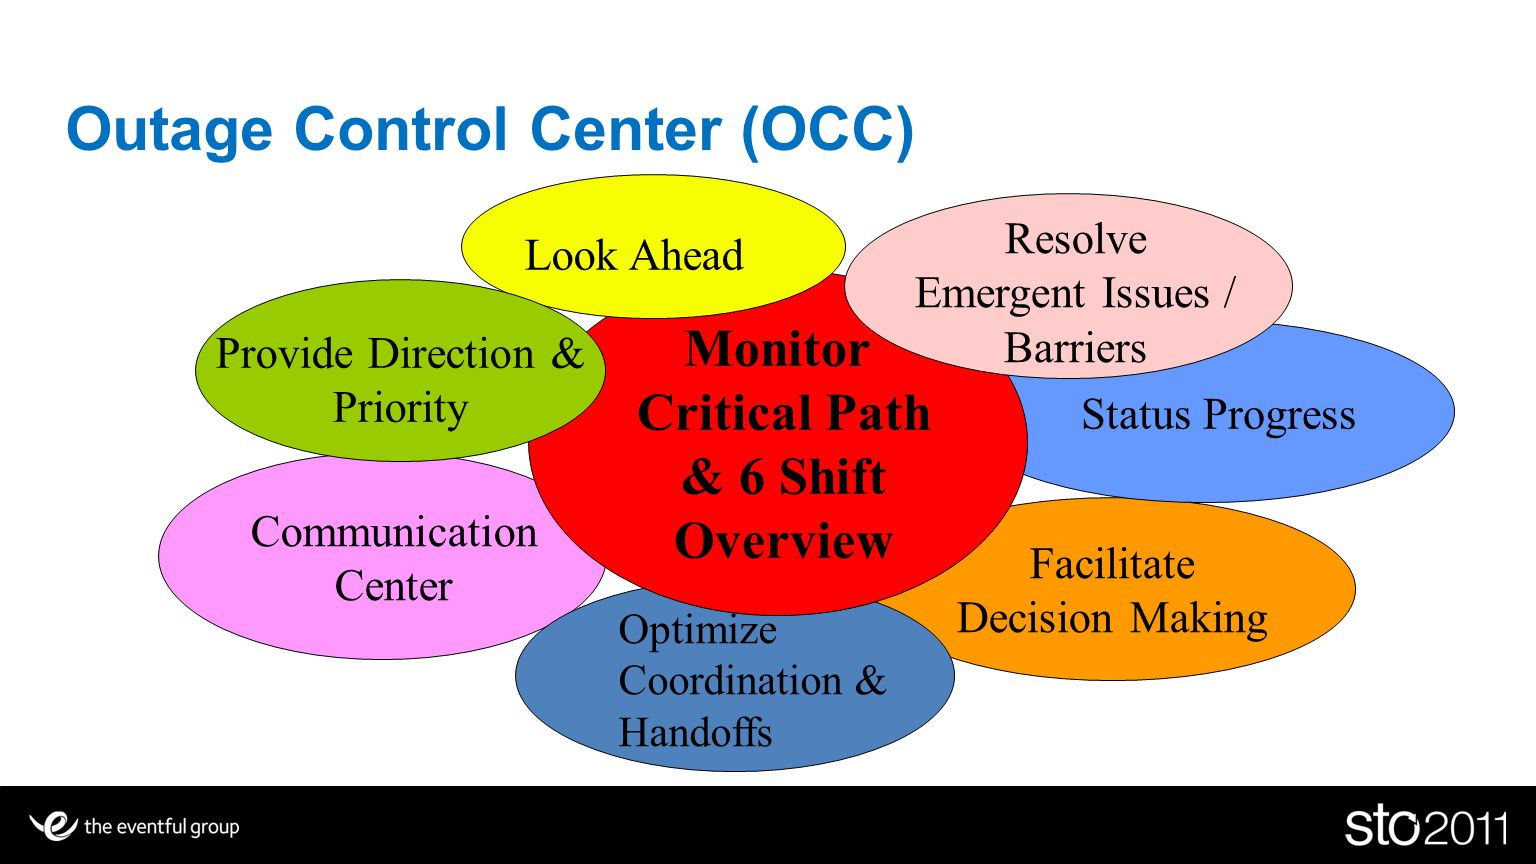 Outage Control Center (OCC) Communication Center Facilitate Decision Making Status Progress Optimize Coordination & Handoffs Monitor Critical Path & 6 Shift Overview Look Ahead Resolve Emergent Issues / Barriers Provide Direction & Priority